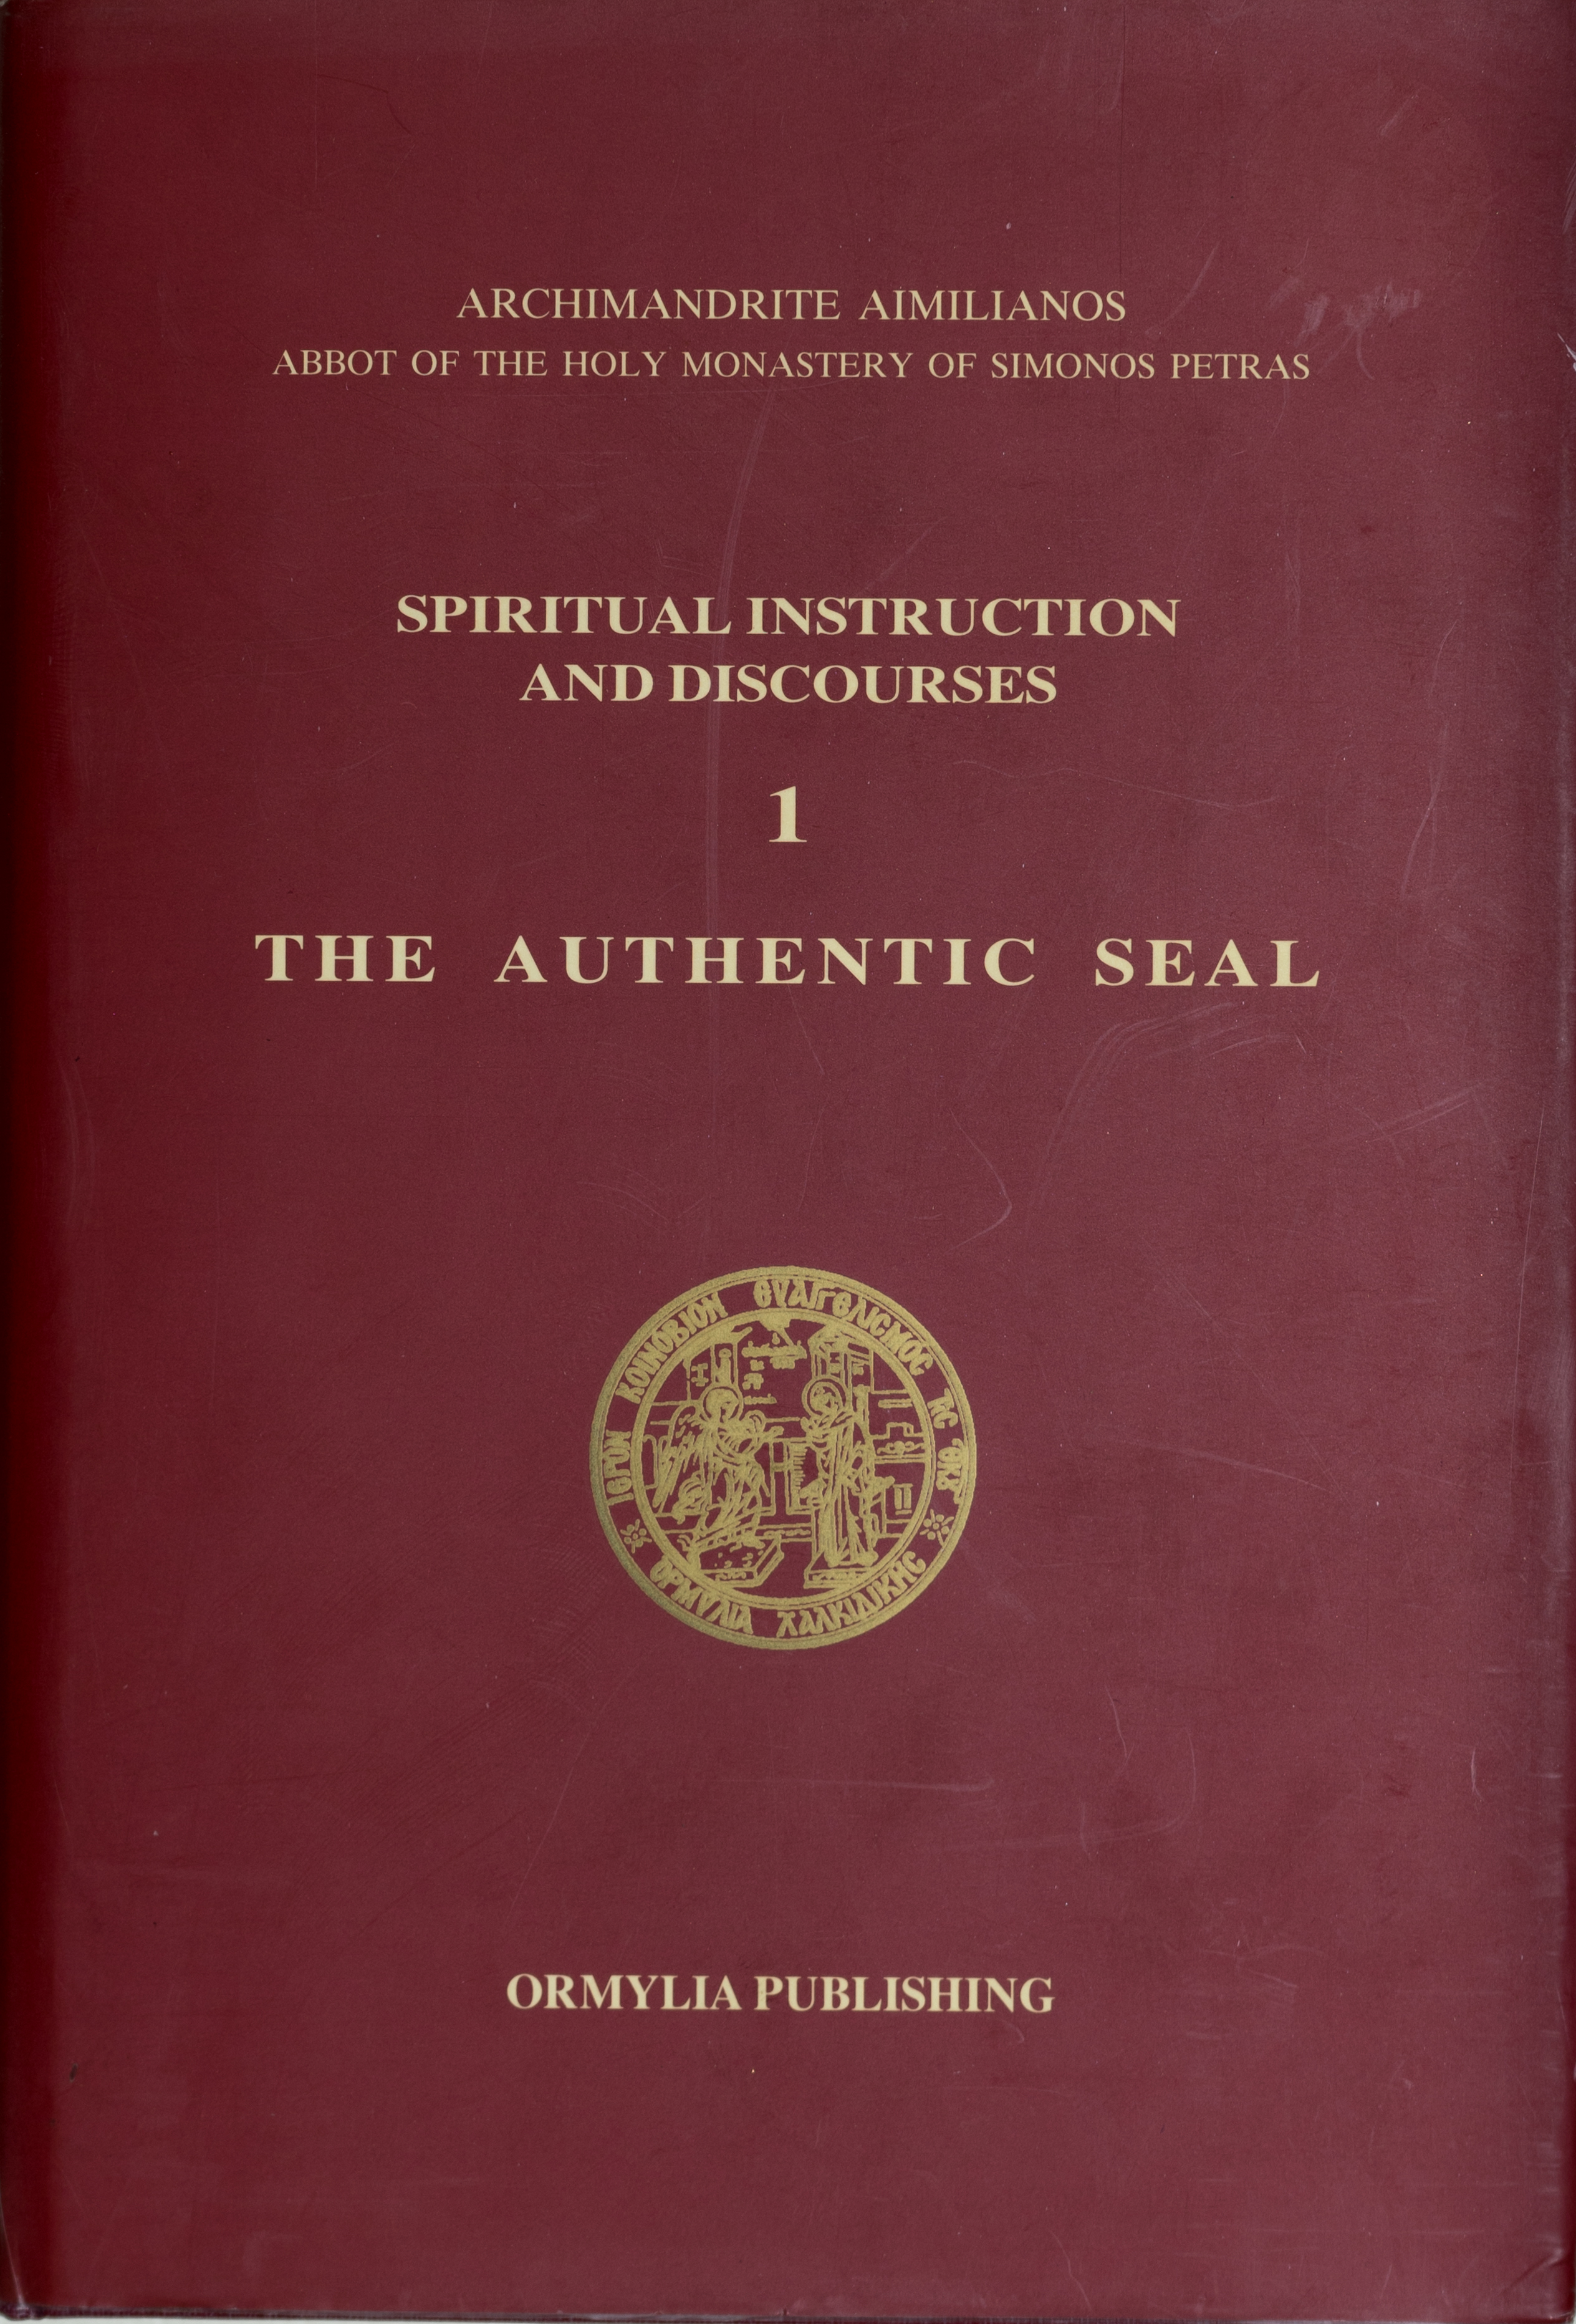 Spiritual Instruction and Discourses 1: The Authentic Seal